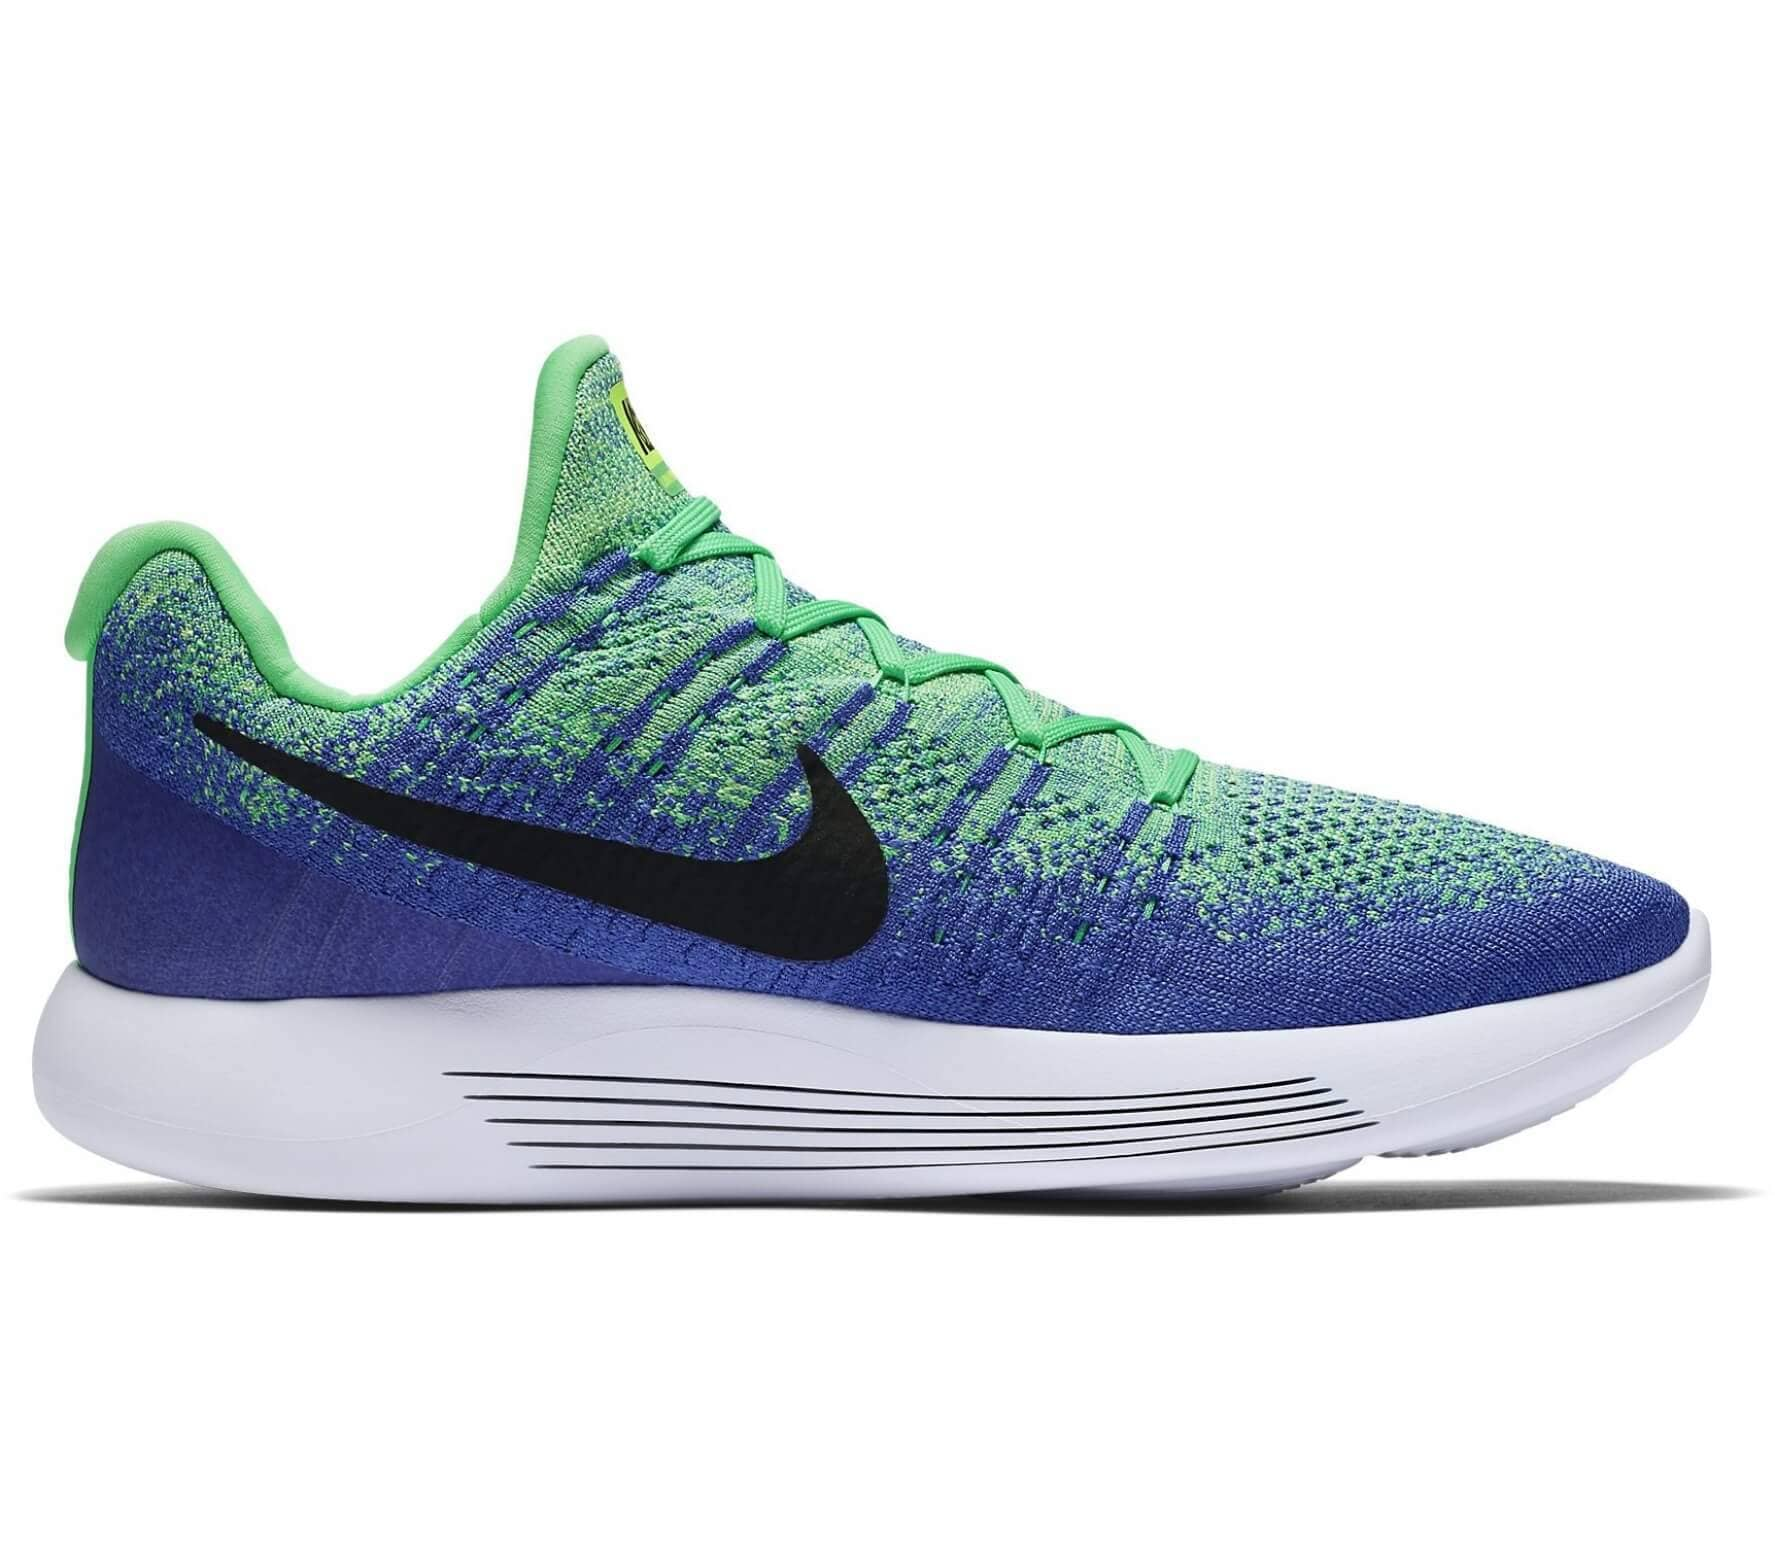 ee6239a61c07 Nike - Lunar Epic Low Flyknit 2 men s running shoes (green blue ...